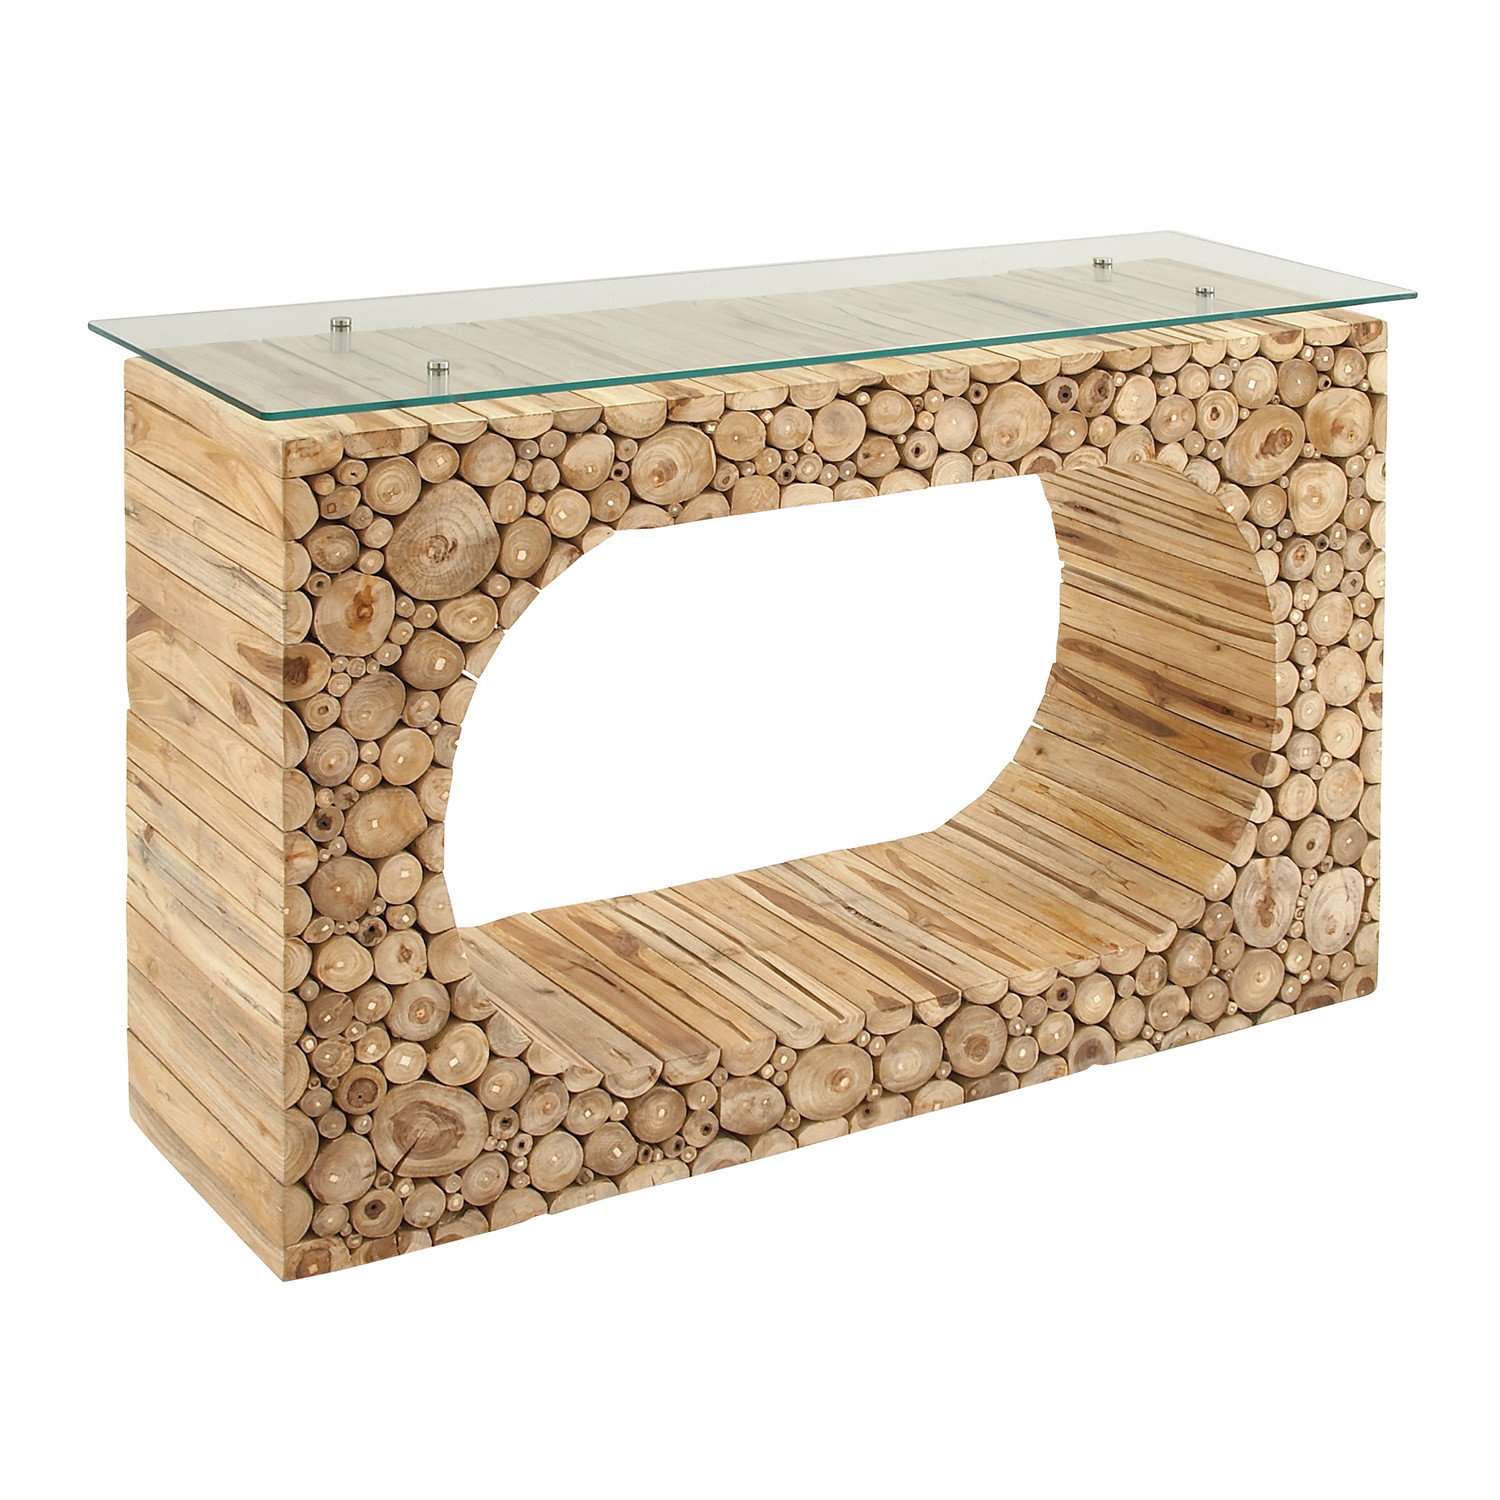 Teak console table glass universal innovative designs inc teak console table glass geotapseo Image collections